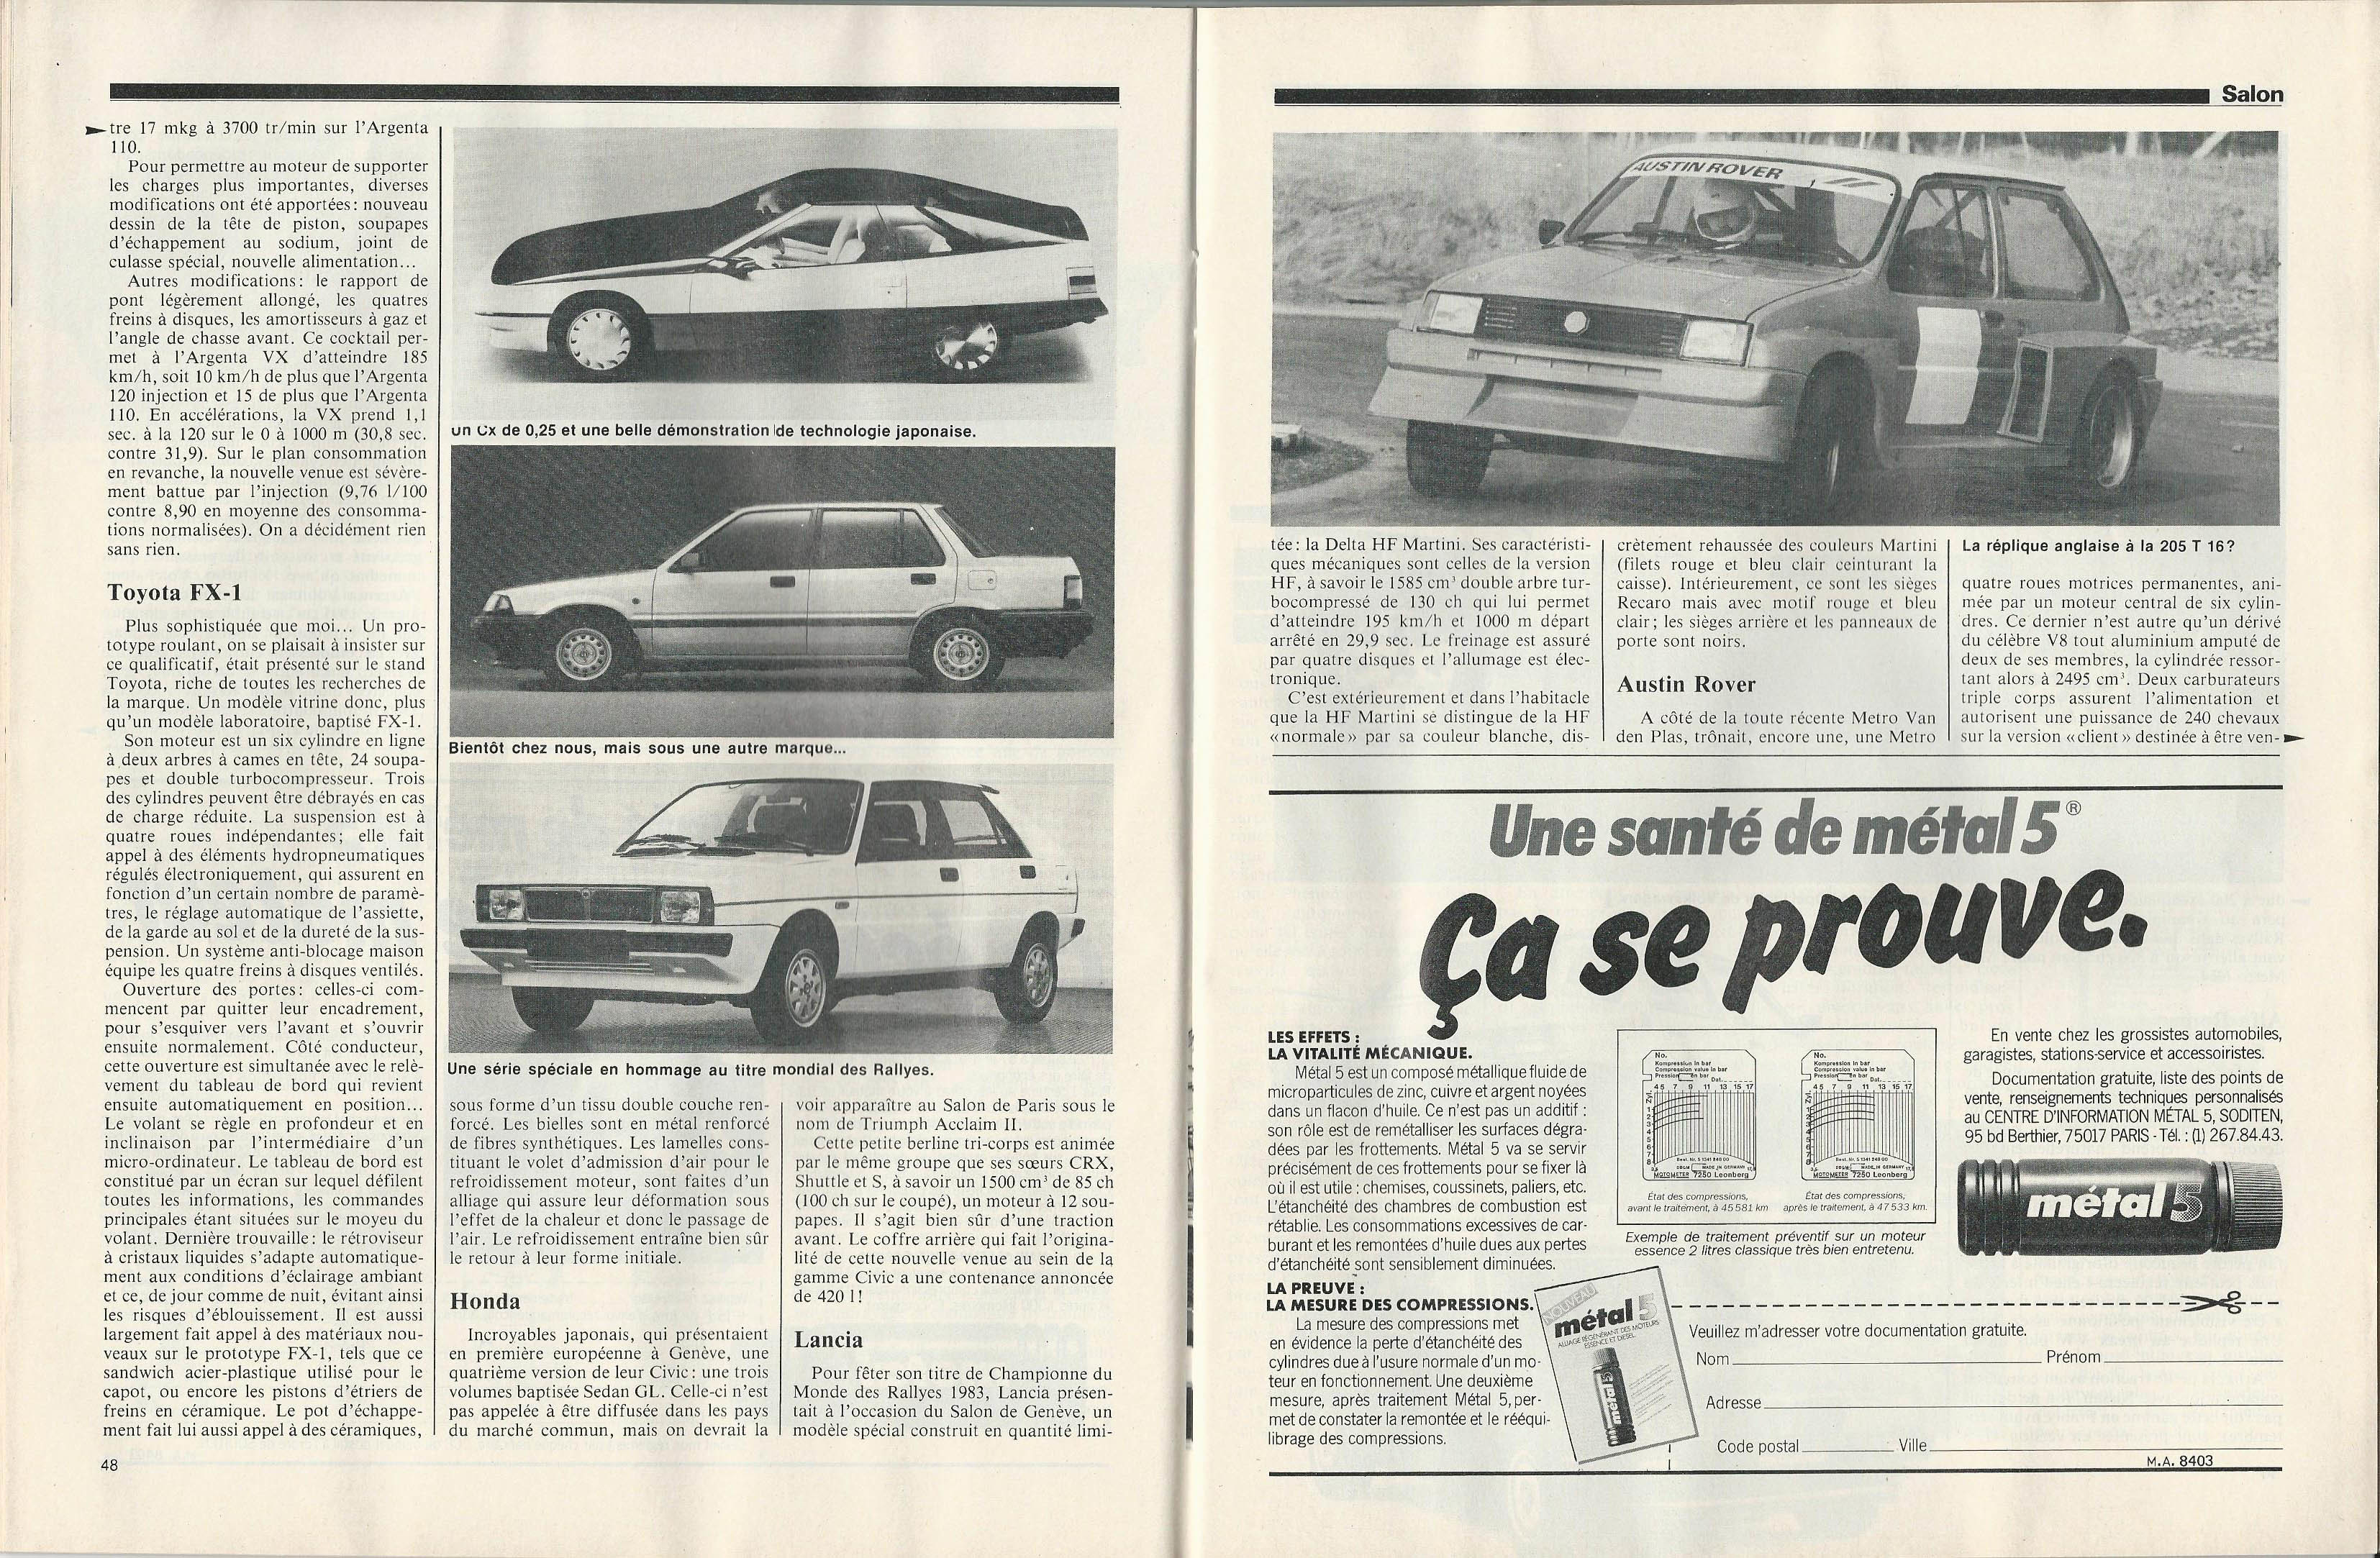 Moniteur Automobile 01 - 08 Mars 1984 (25)